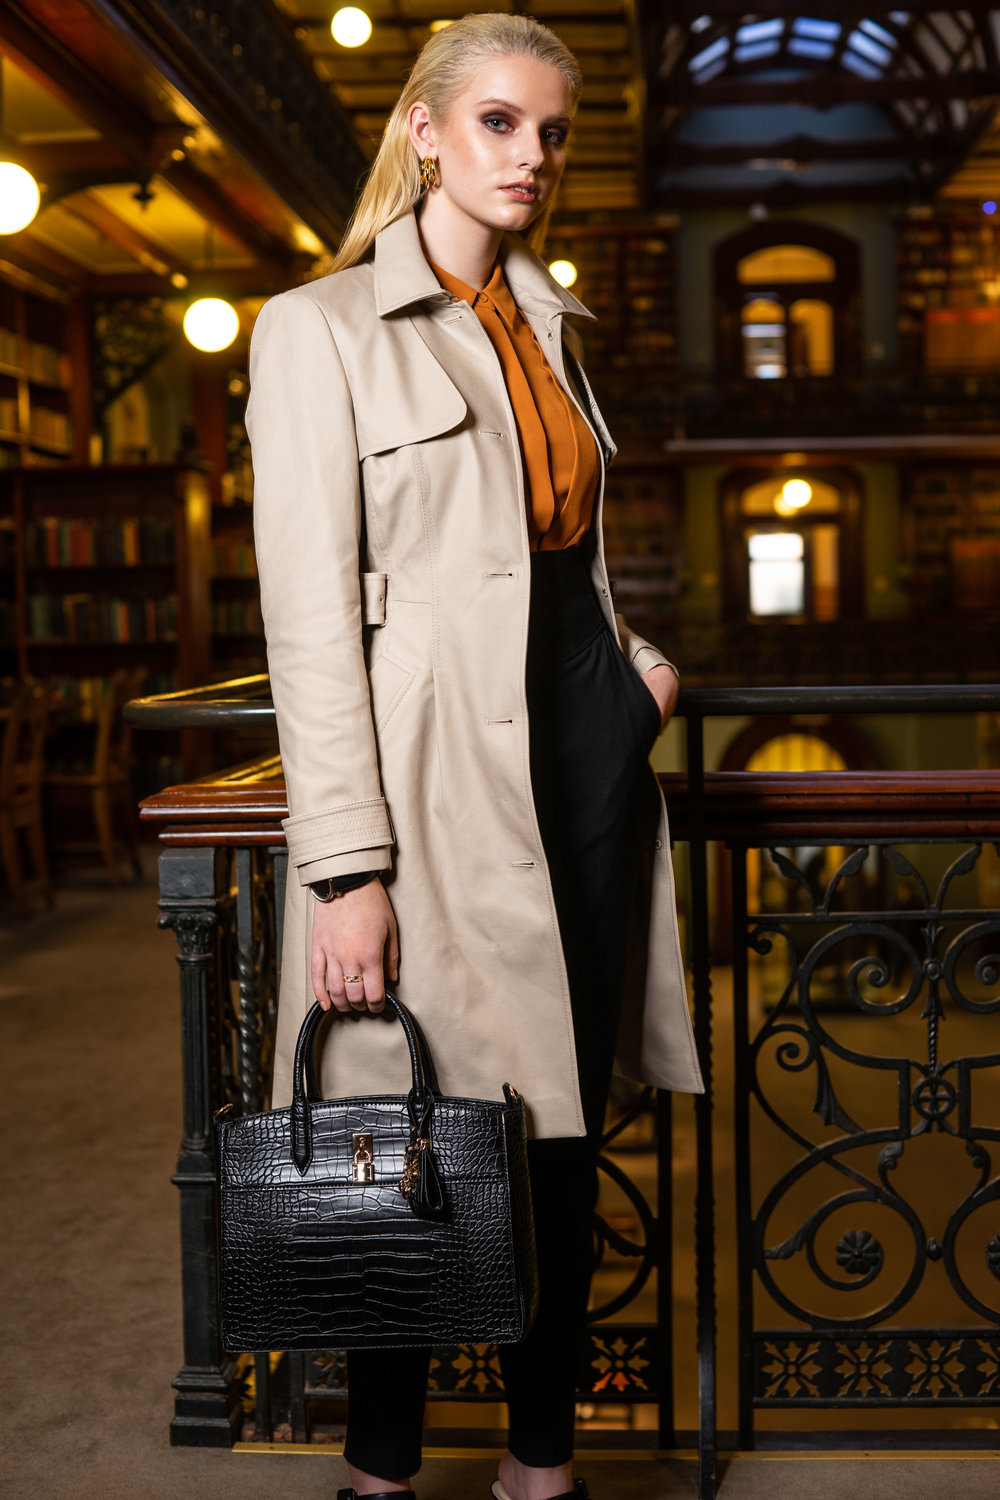 Sunday Mail , Fashion with Mirella , Office   Chic at the Mortlock Library Adelaide. Photo: Nick Clayton